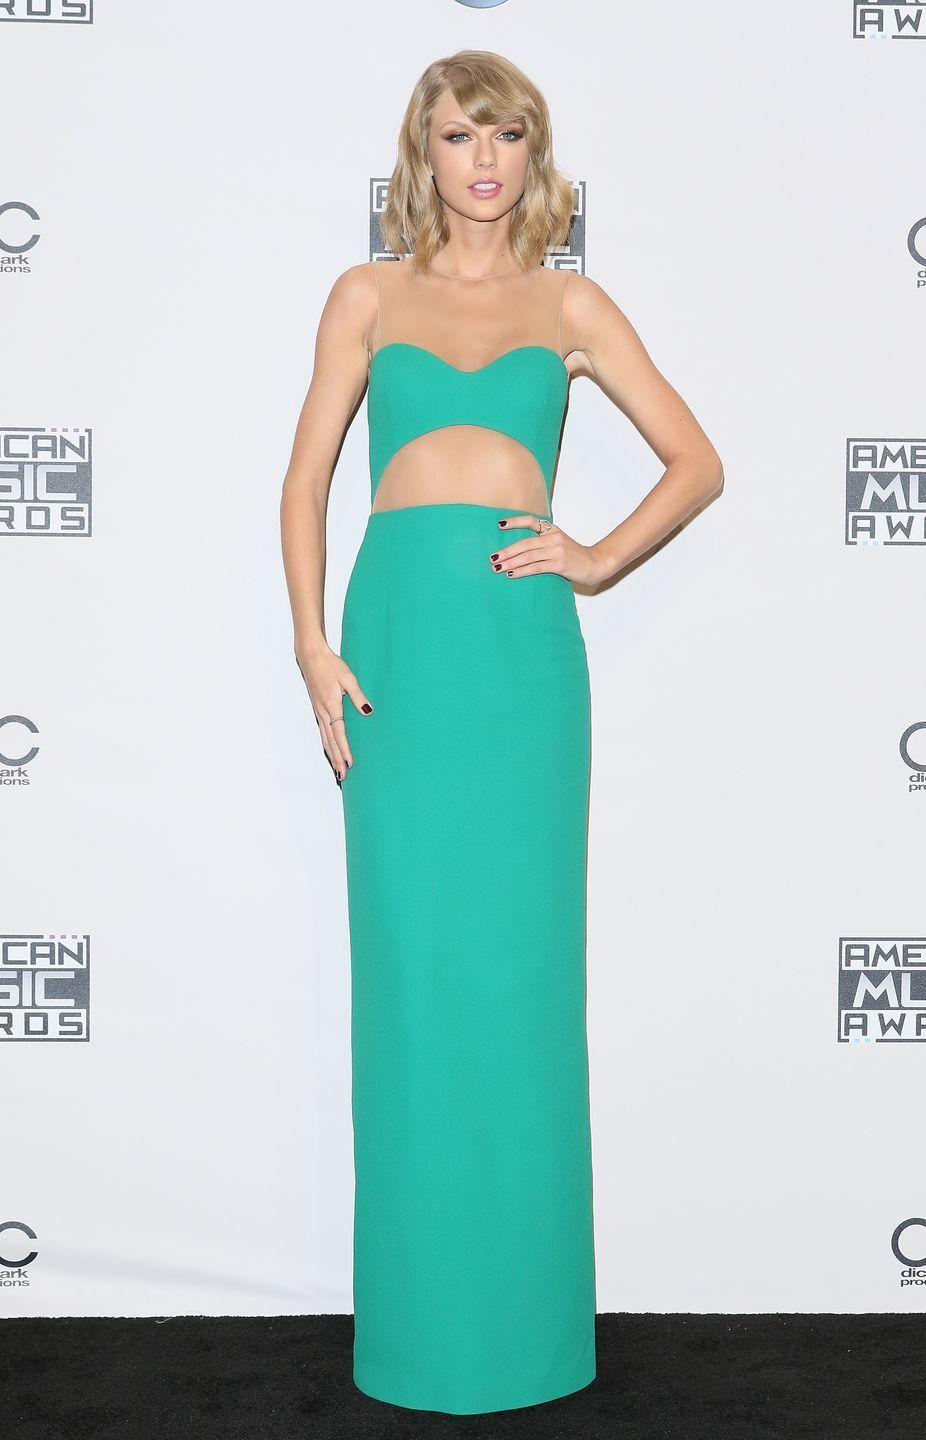 <p>Swap the skirt for a pair of pants and Taylor Swift's outfit for the 2014 American Music Awards looks exactly like Jasmine's.</p>